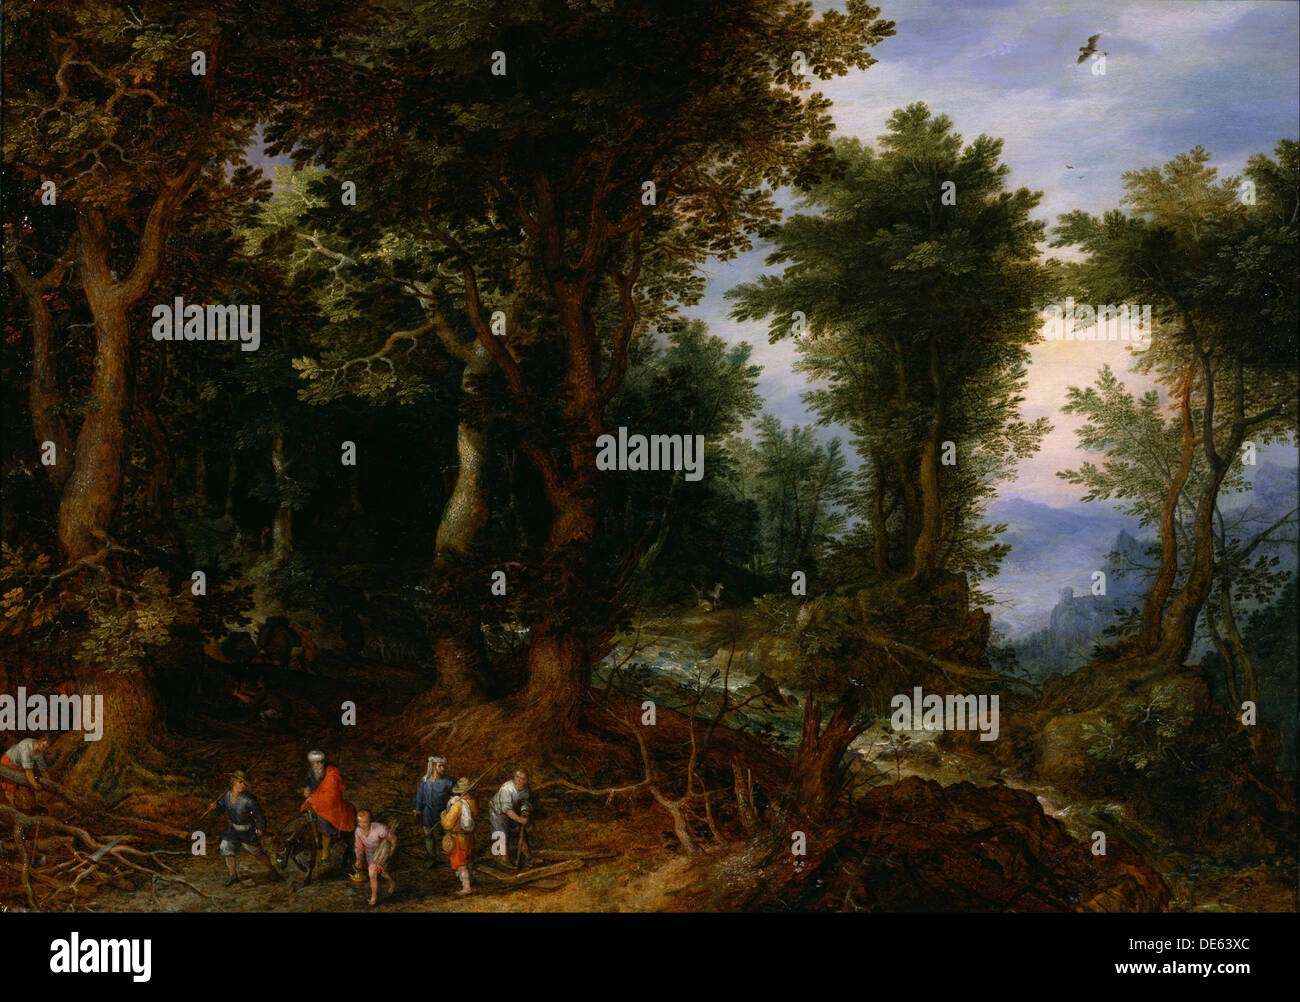 Wooded Landscape with Abraham and Isaac, 1599. Artist: Brueghel, Jan, the Elder (1568-1625) - Stock Image